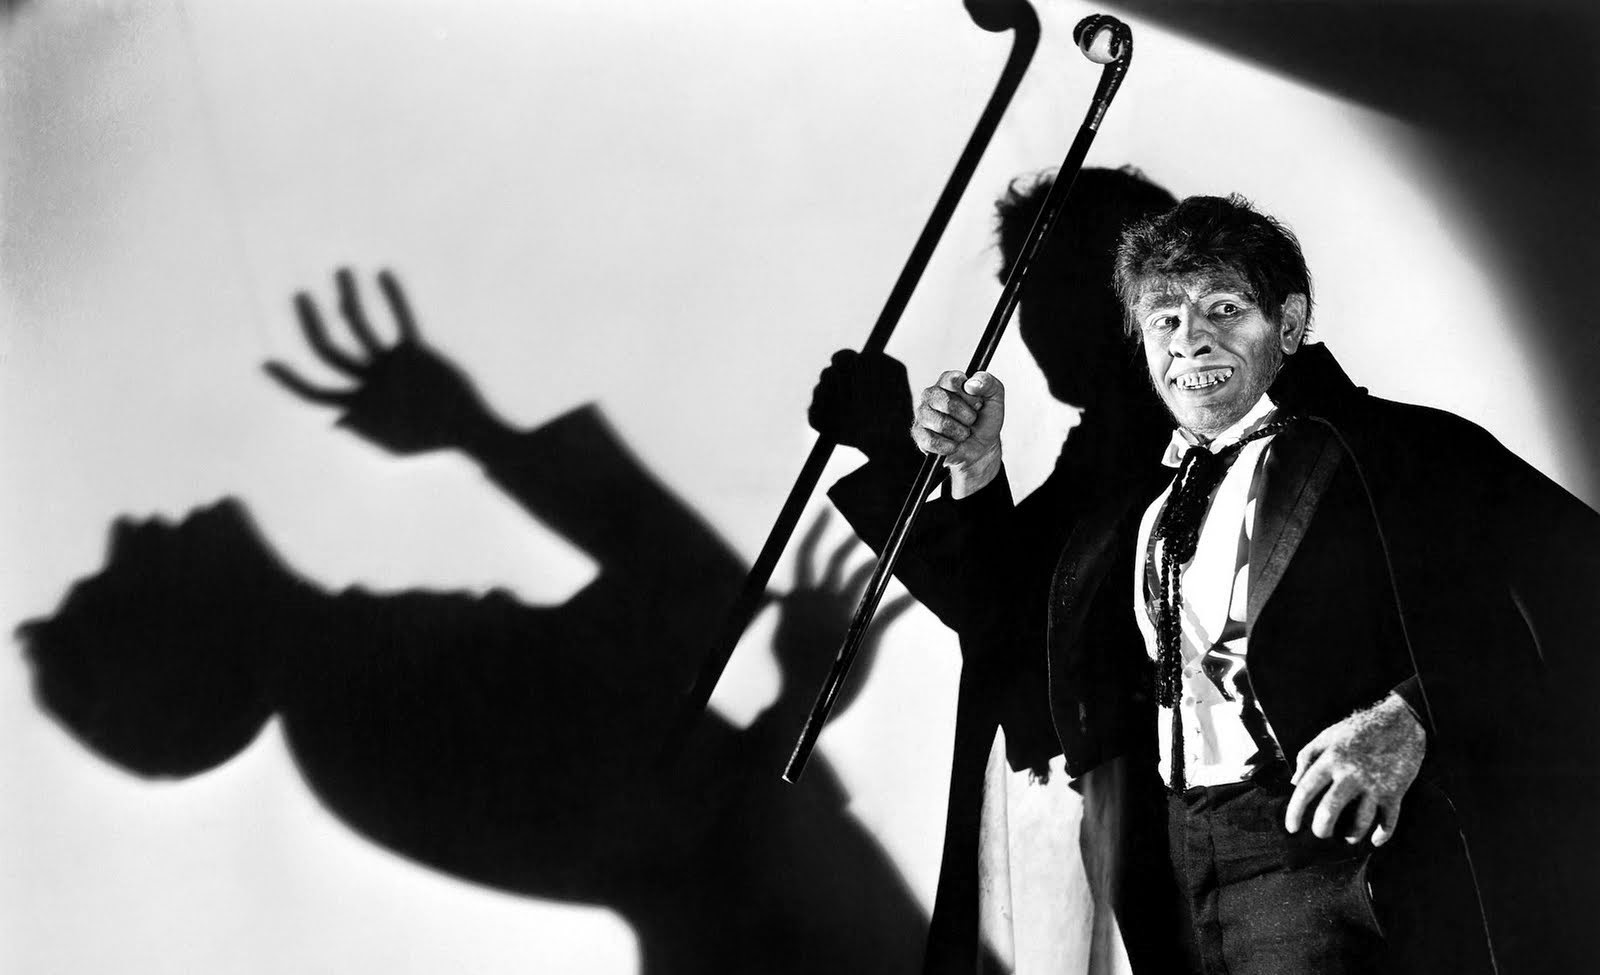 Dr. Jekyll and Mr. Hyde (filme de 1931)